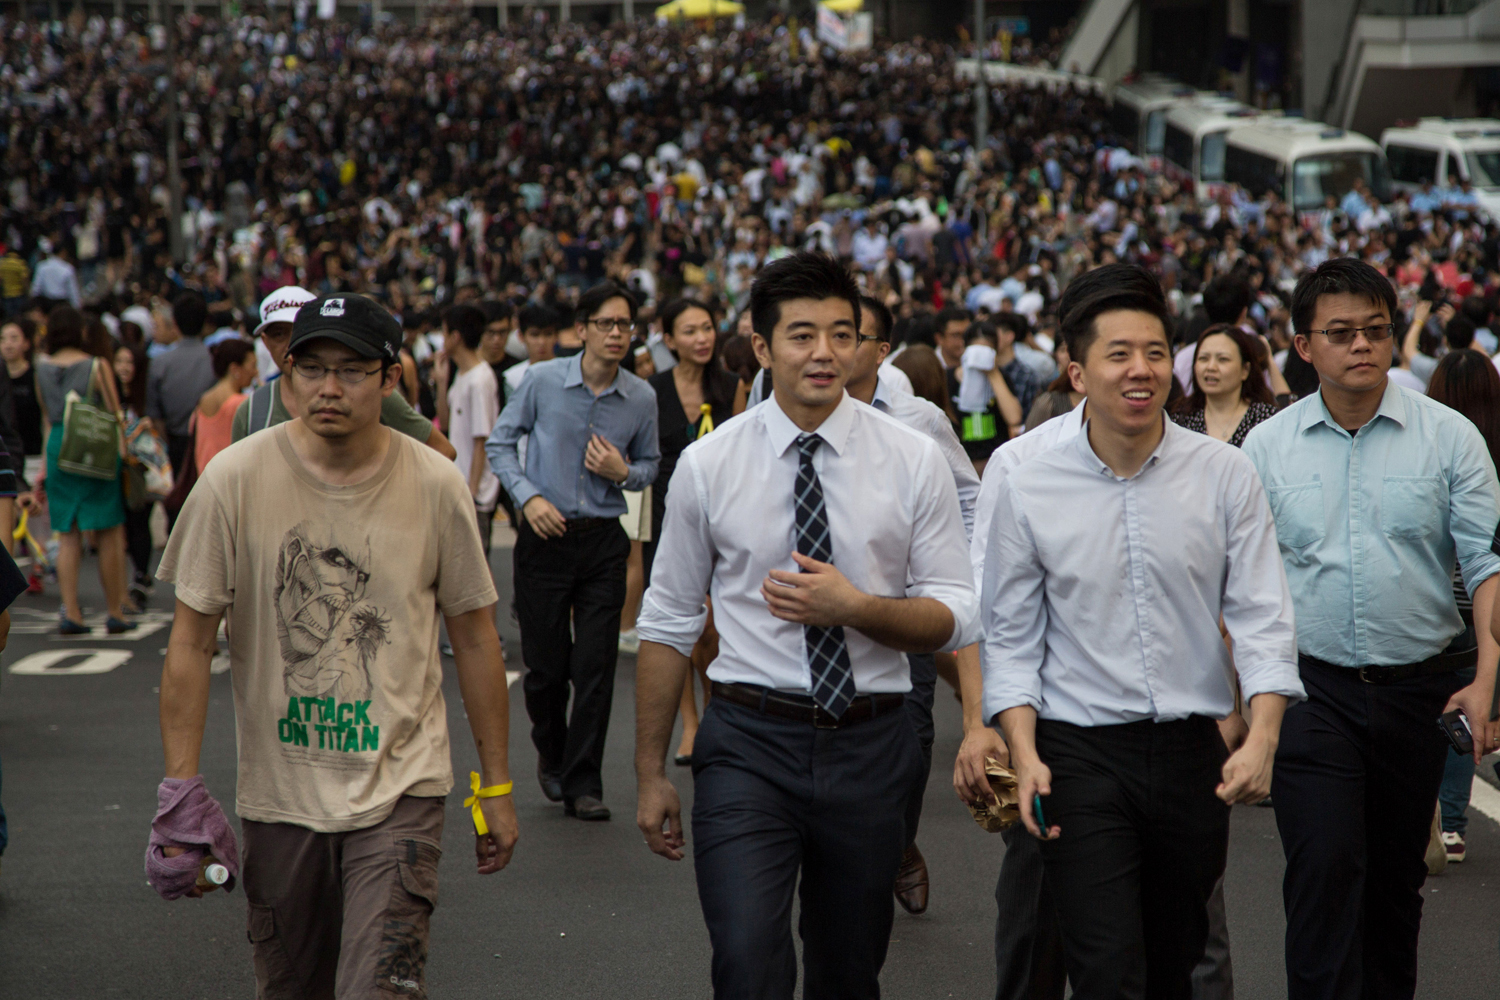 Office workers walk through closed off streets in front of protesters near the central government offices in the business district of Central in Hong Kong on Sept. 29, 2014